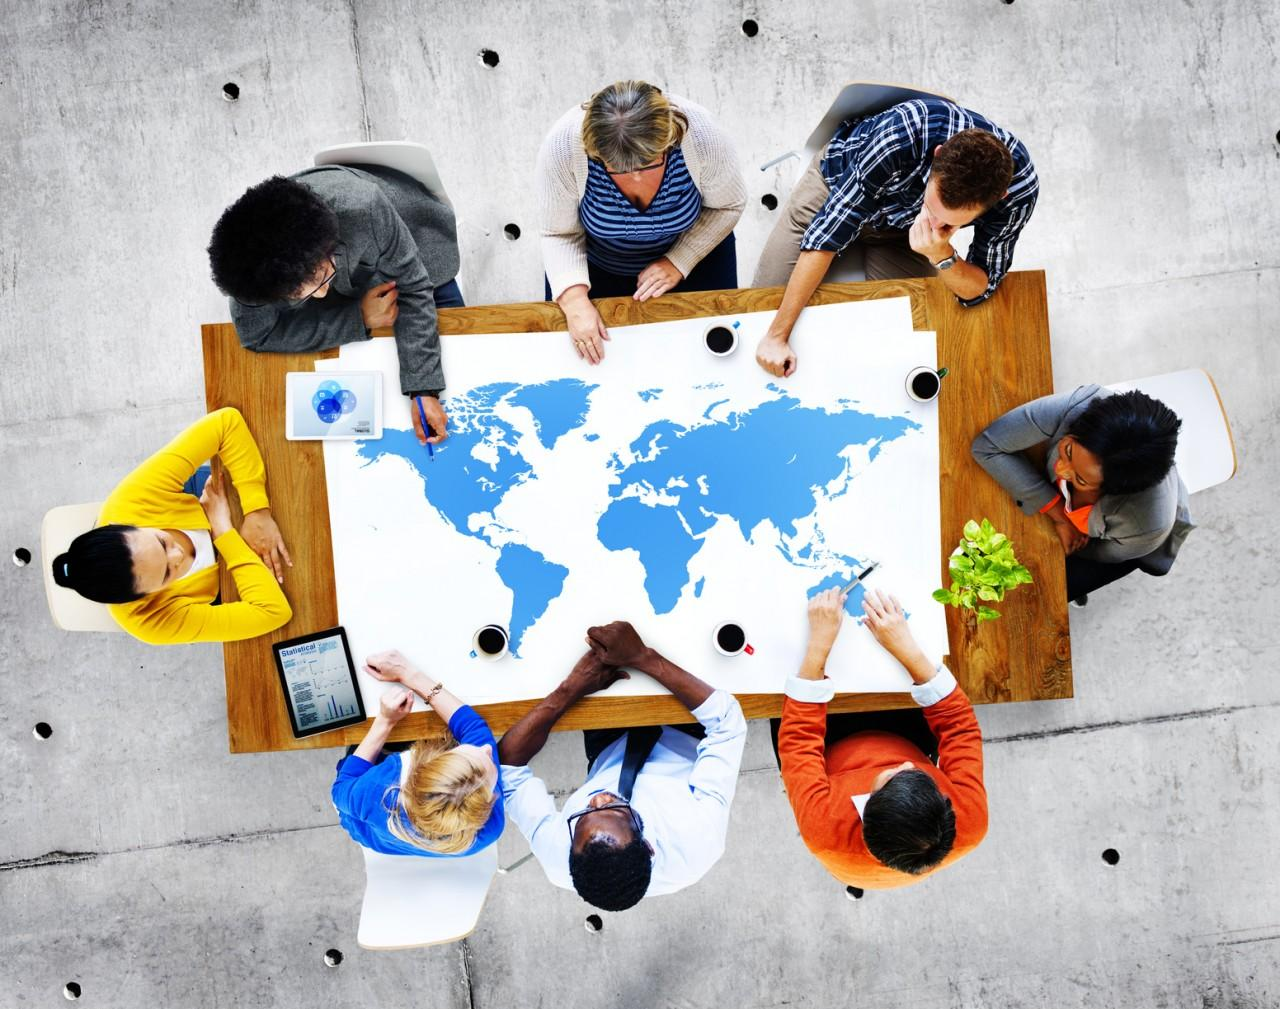 5 Essential Skills Every International Business Professional Needs